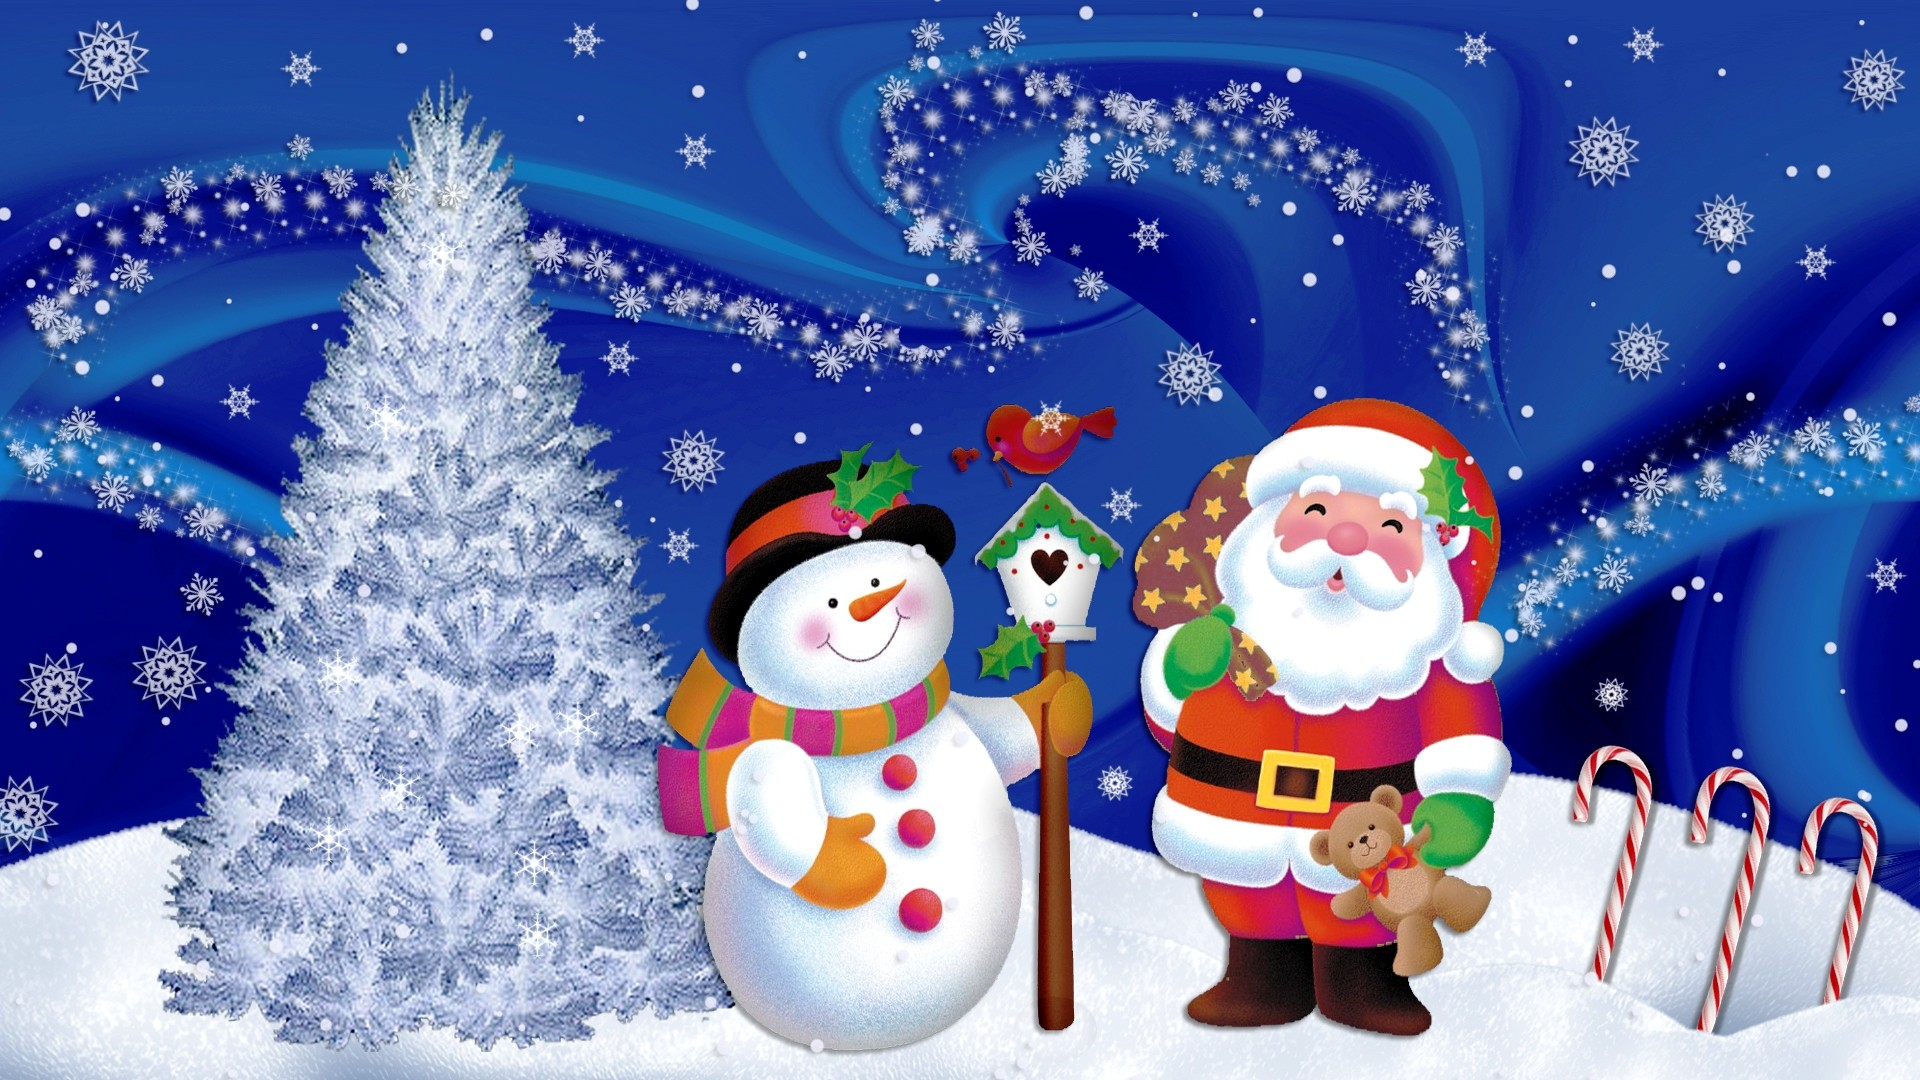 … animated-christmas-wallpapers-free-download-7